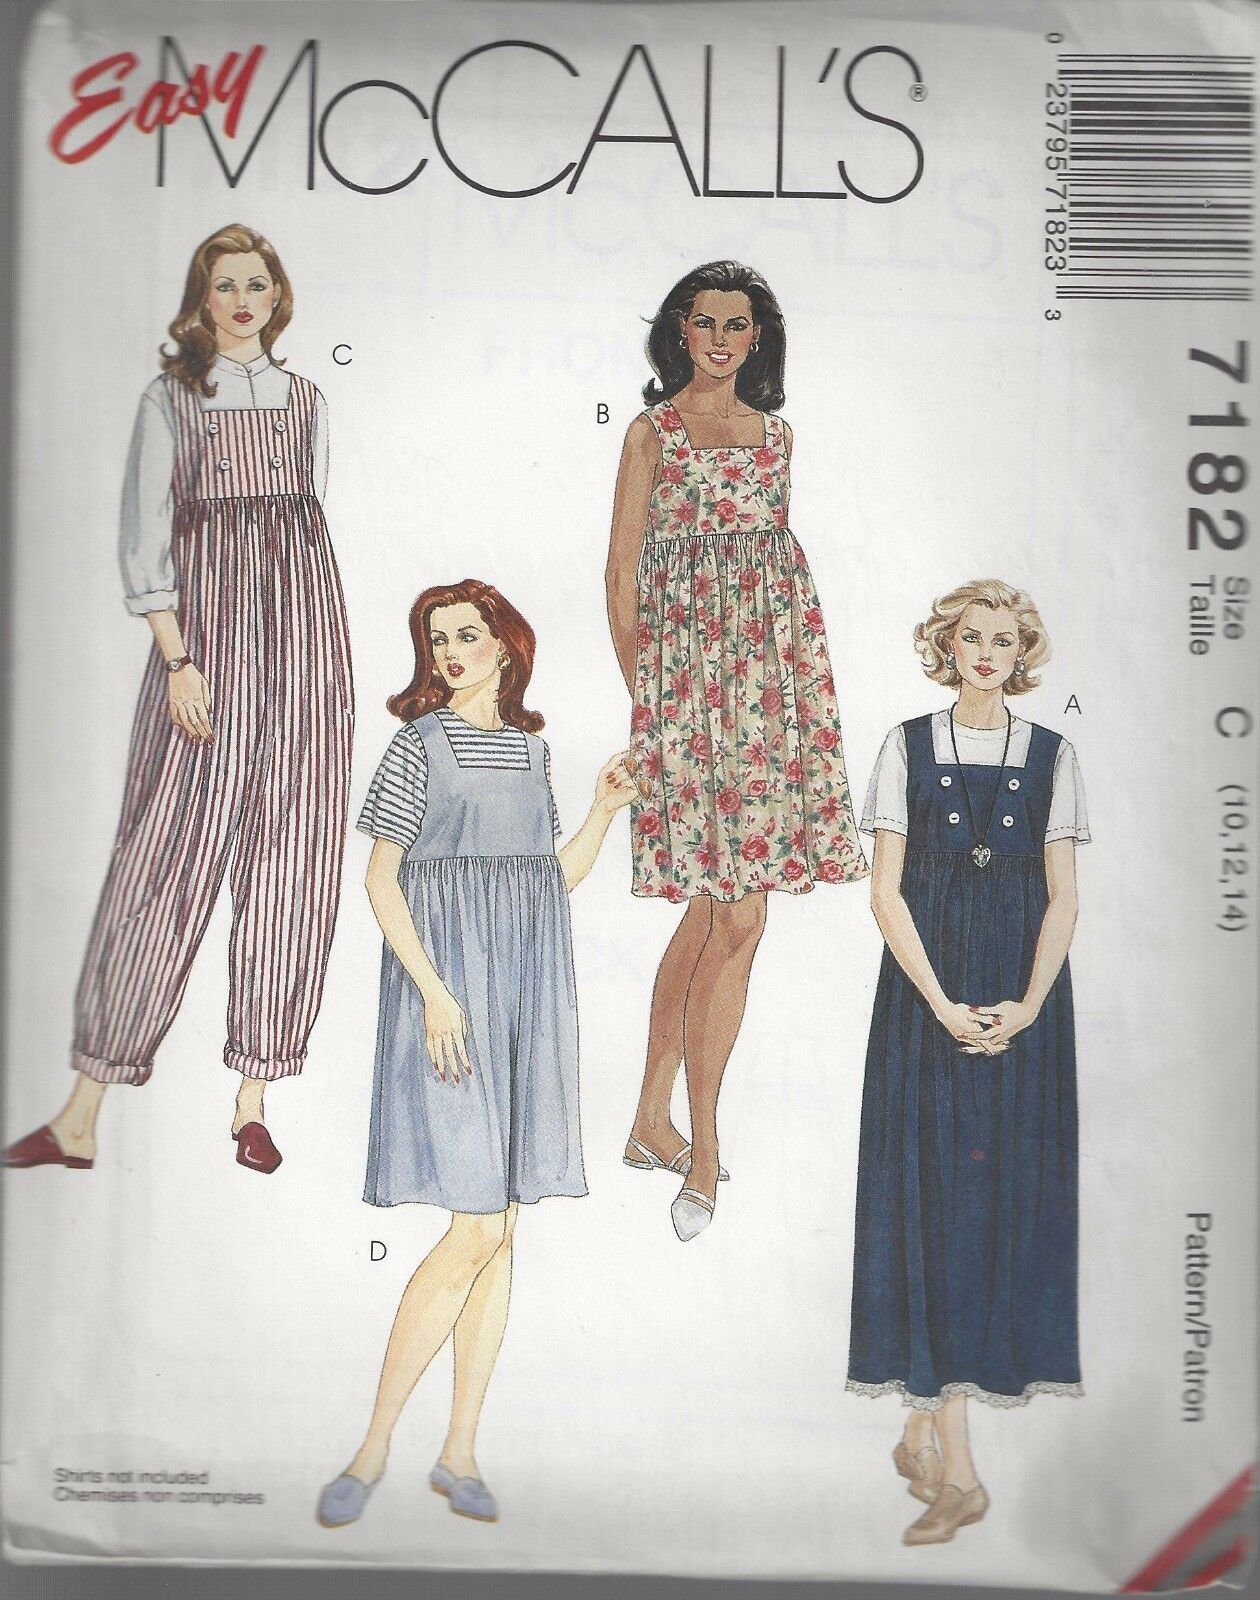 Mccalls sewing pattern 7182 maternity dress jumper jumpsuit romper picture 1 of 2 ombrellifo Image collections